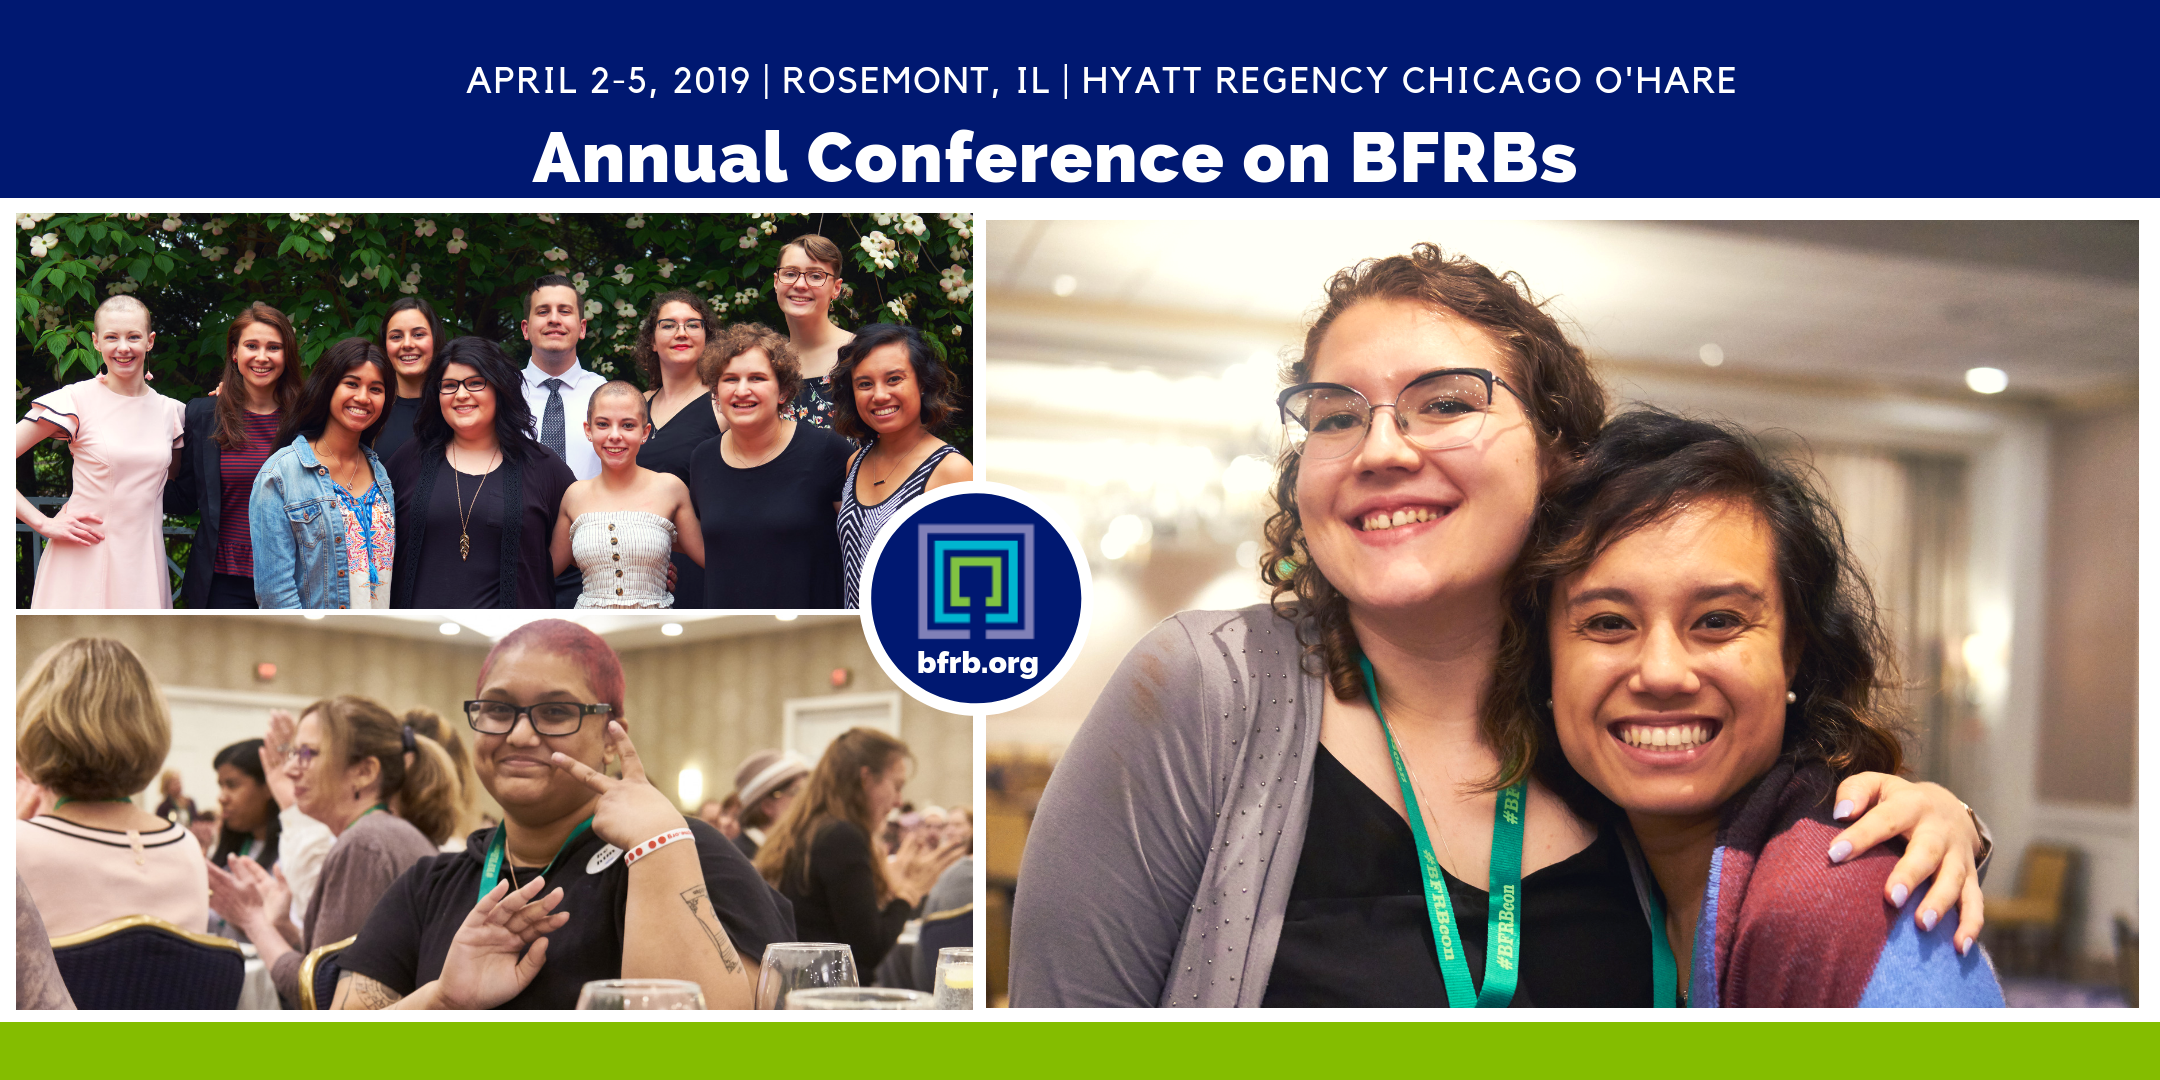 TLC's Annual Conference on BFRB'S